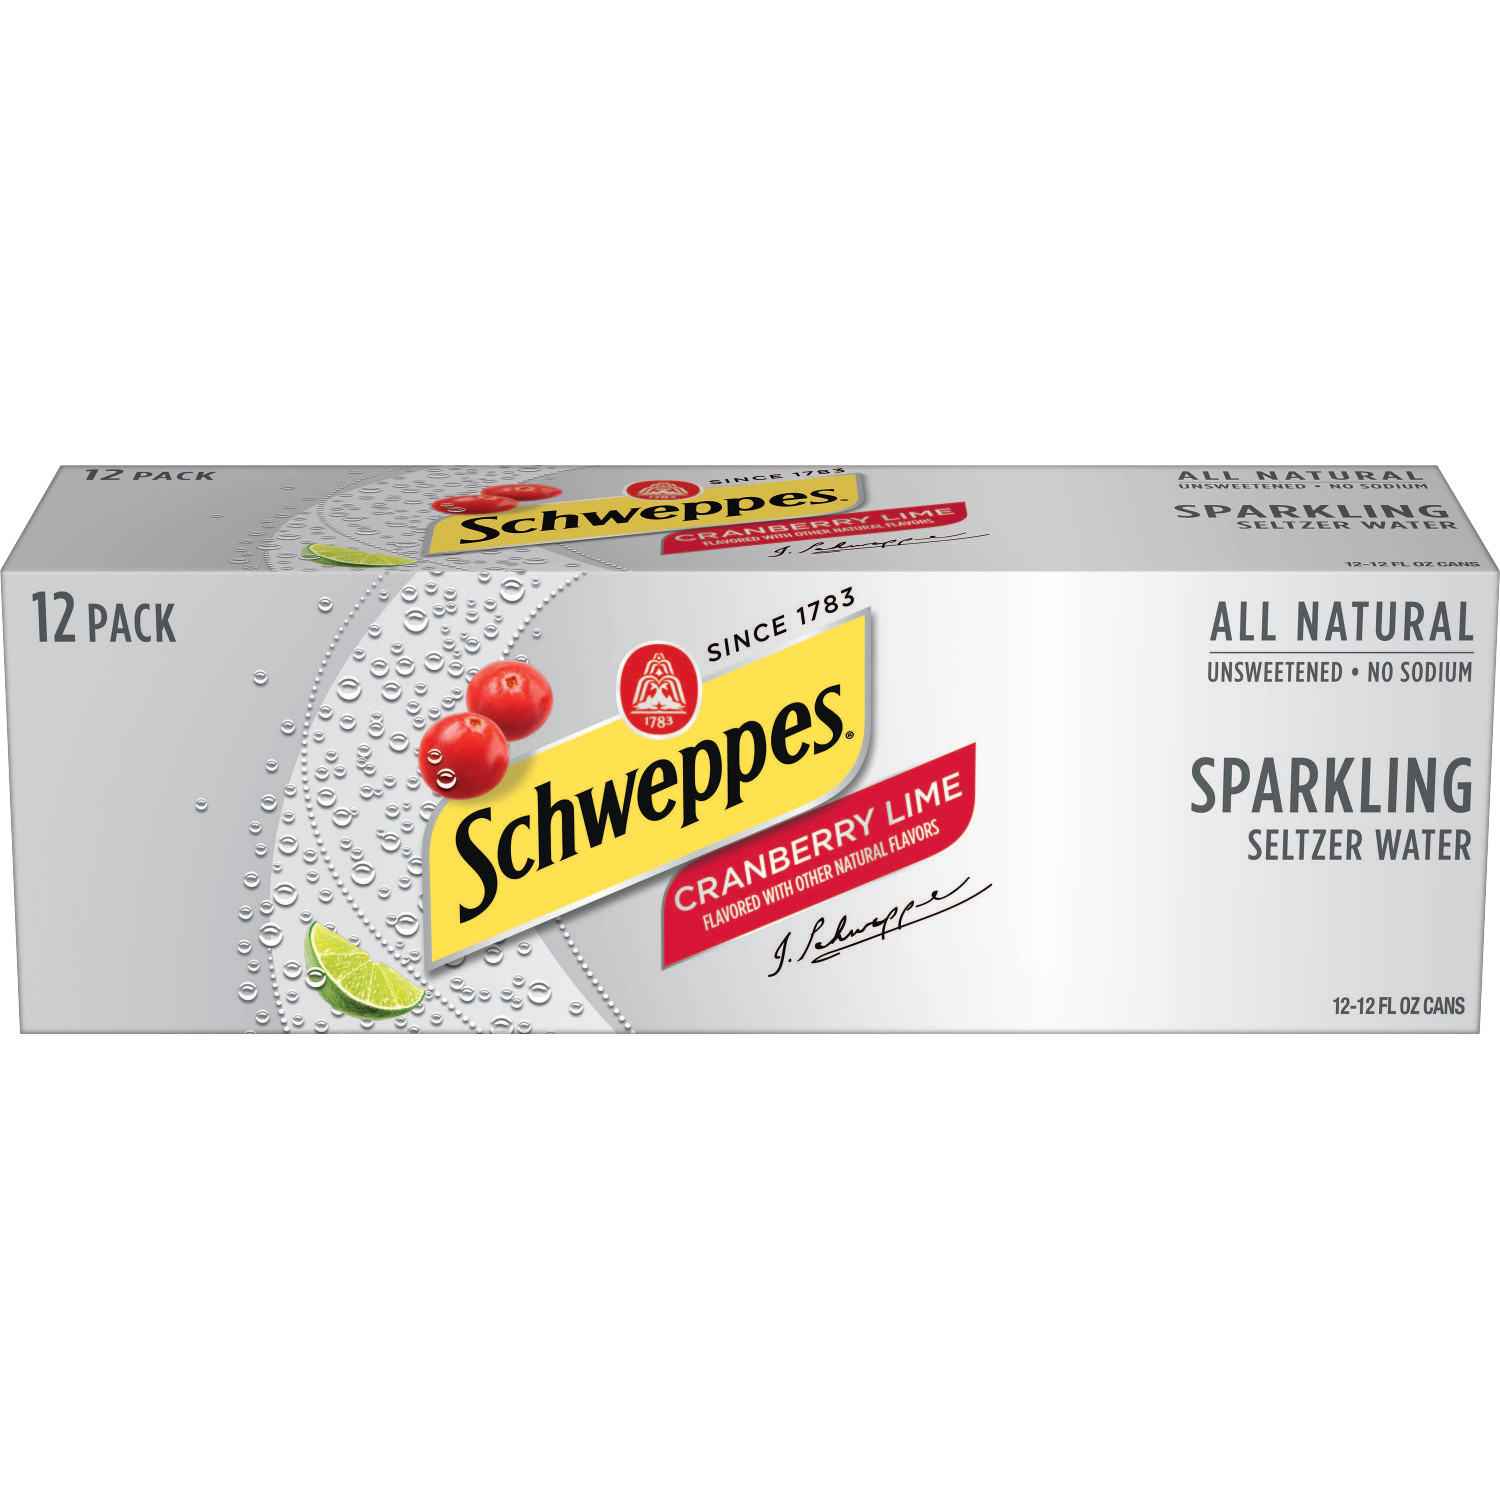 Schweppes Cranberry Lime Sparkling Seltzer Water, 12 fl oz, 12 pack